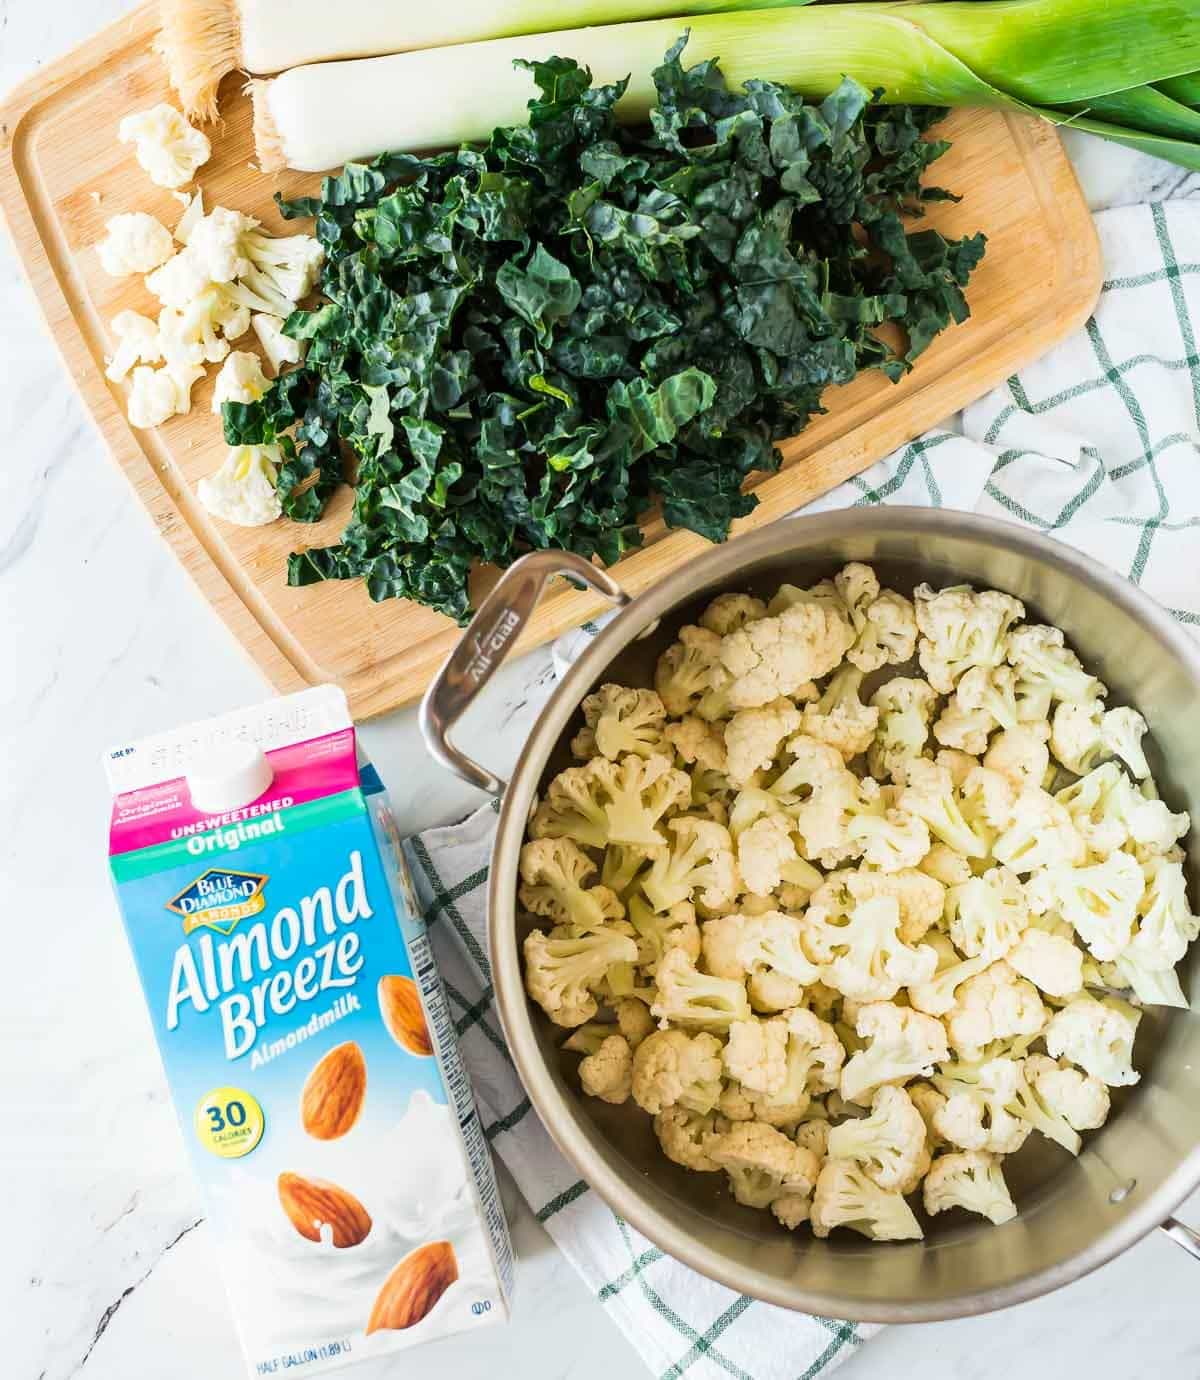 Almond orchard and a low carb mashed cauliflower recipe with kale and leeks